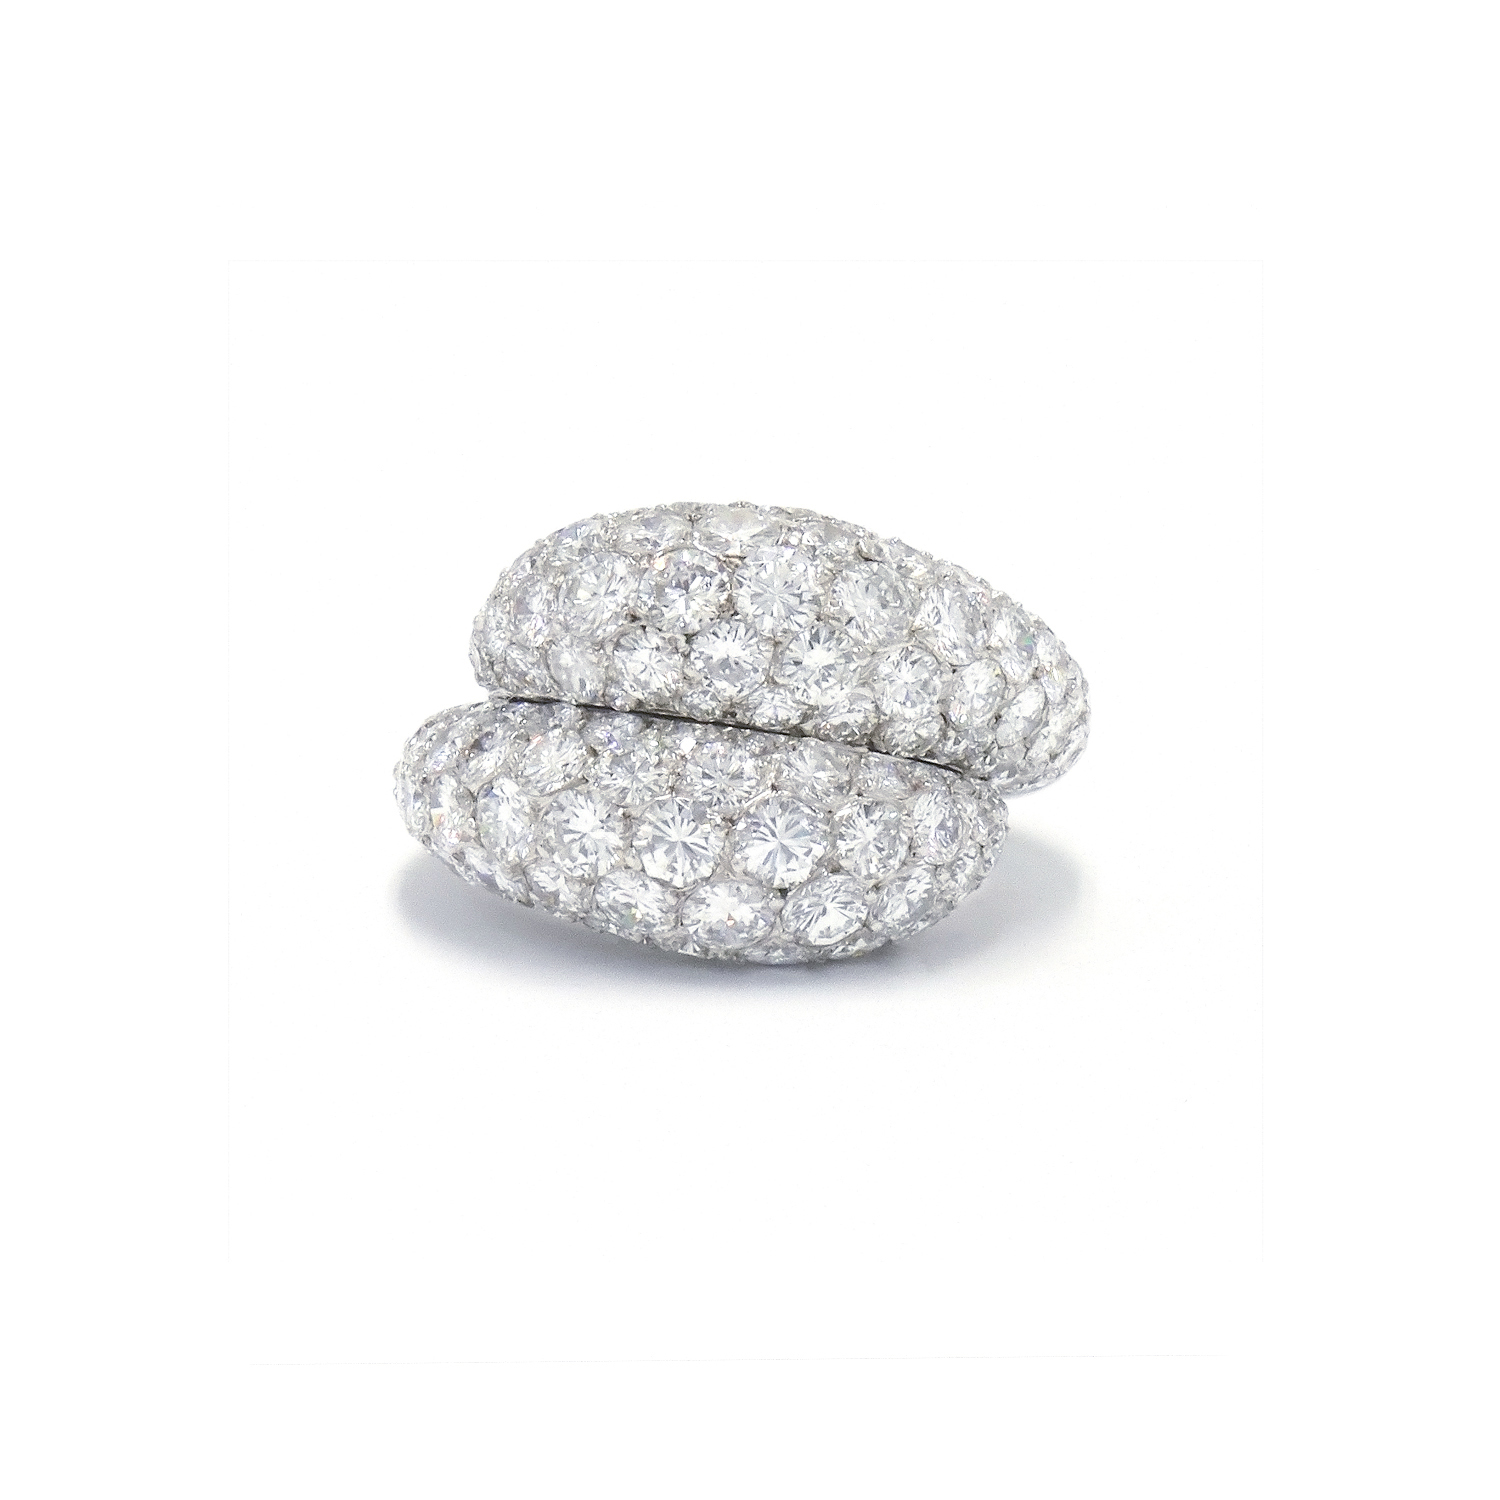 Pavé Diamond Bypass Ring by Van Cleef & Arpels Style F-36781-FL-0-0